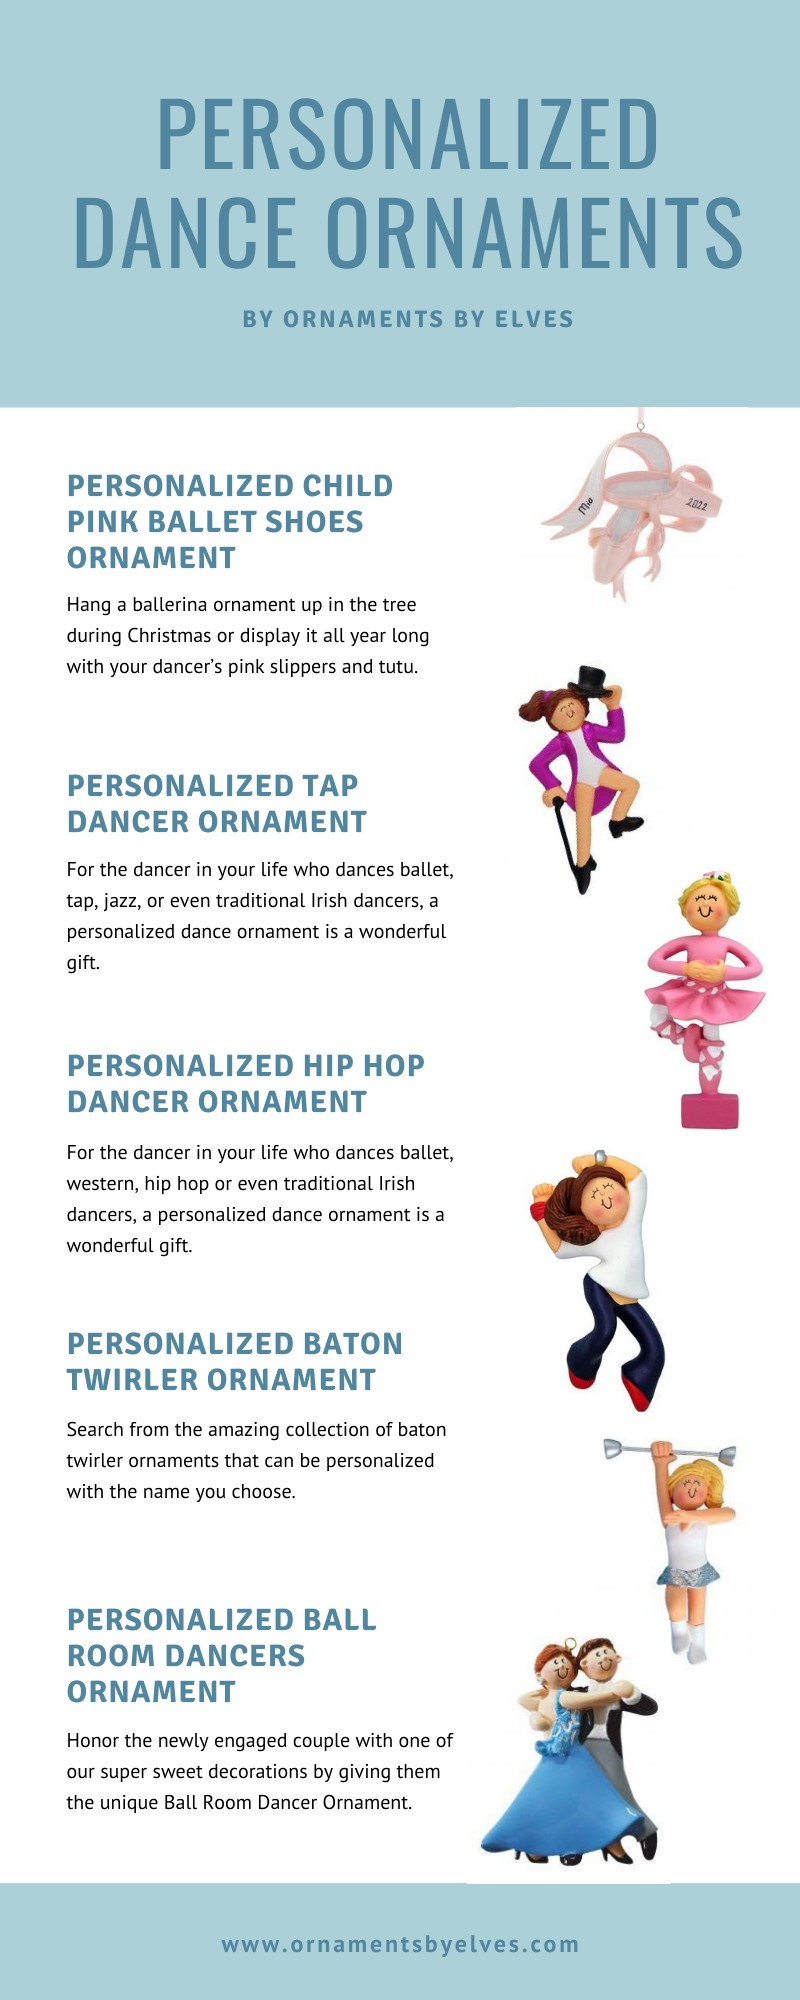 Personalized Dance Ornaments